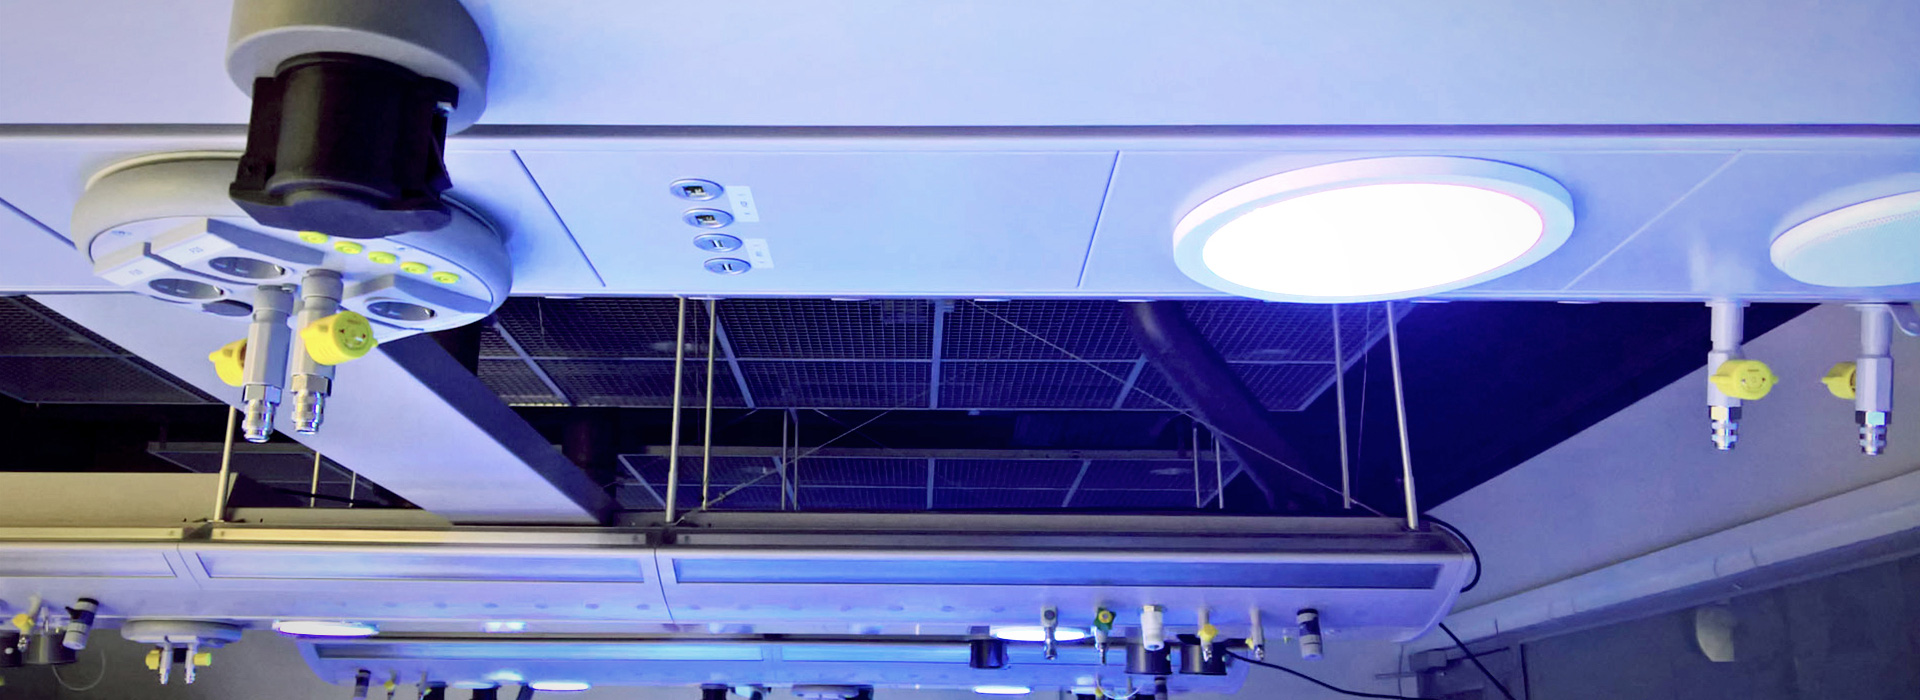 Image: Heureka science lab with ceiling supply and light